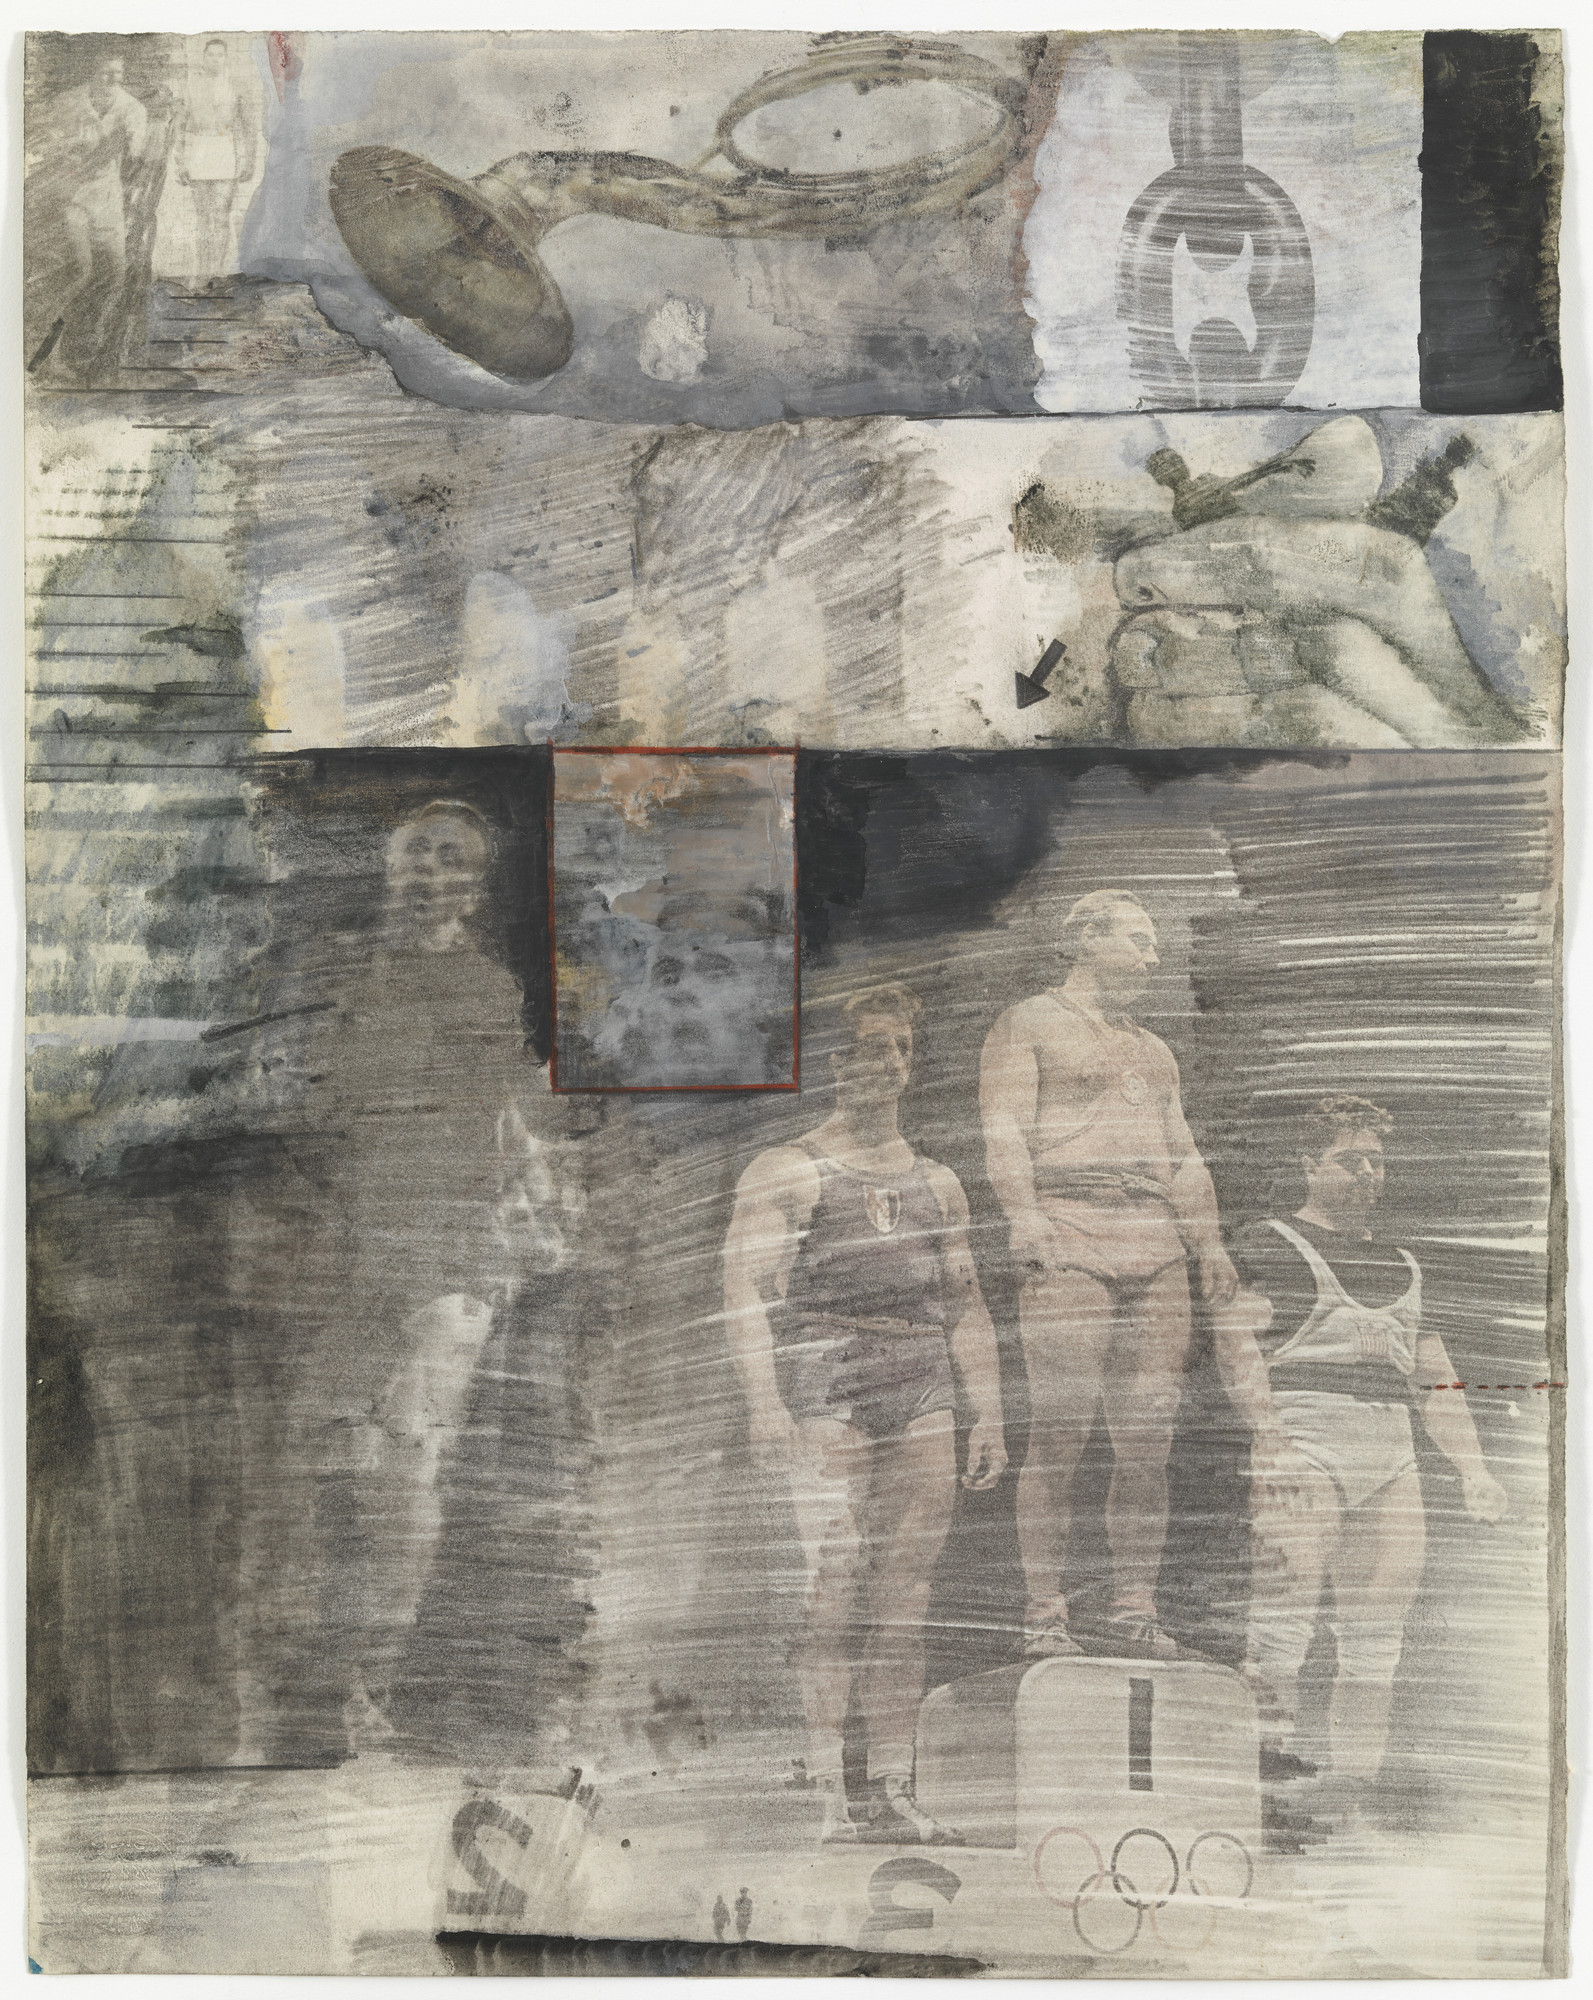 Robert Rauschenberg. Canto XXXI: The Central Pit of Malebolge, The Giants from the series Thirty- Four Illustrations for Dante's Inferno. (1959-60)